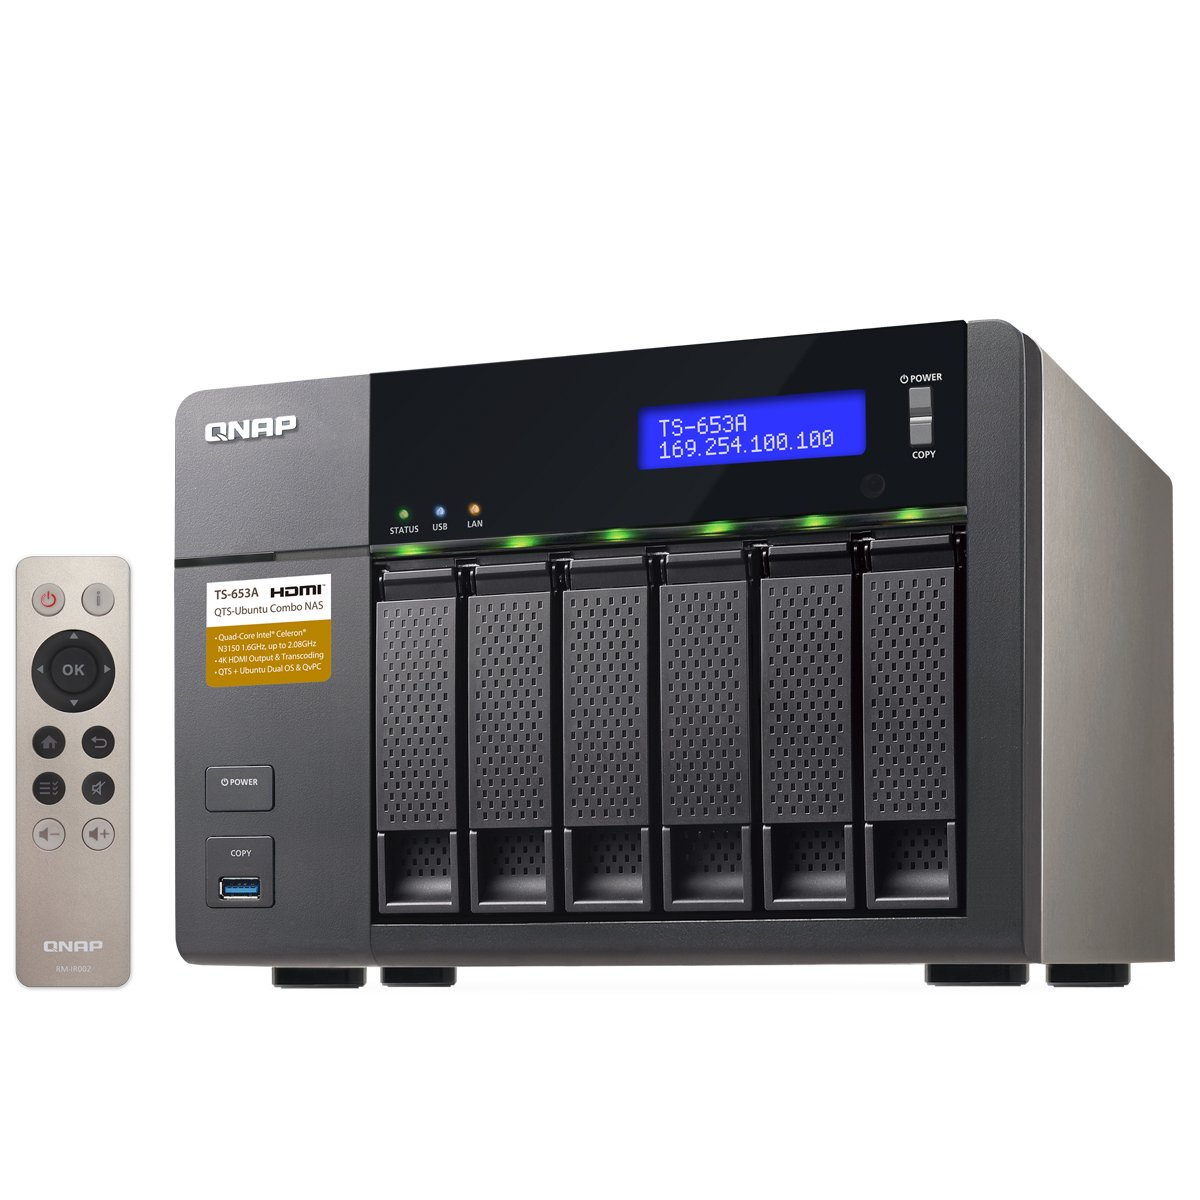 QNAP TS-653A (8GB RAM version) 6-Bay Professional-Grade Network Attached Storage, Supports 4K Playback (TS-653A-8G-US) by QNAP (Image #3)